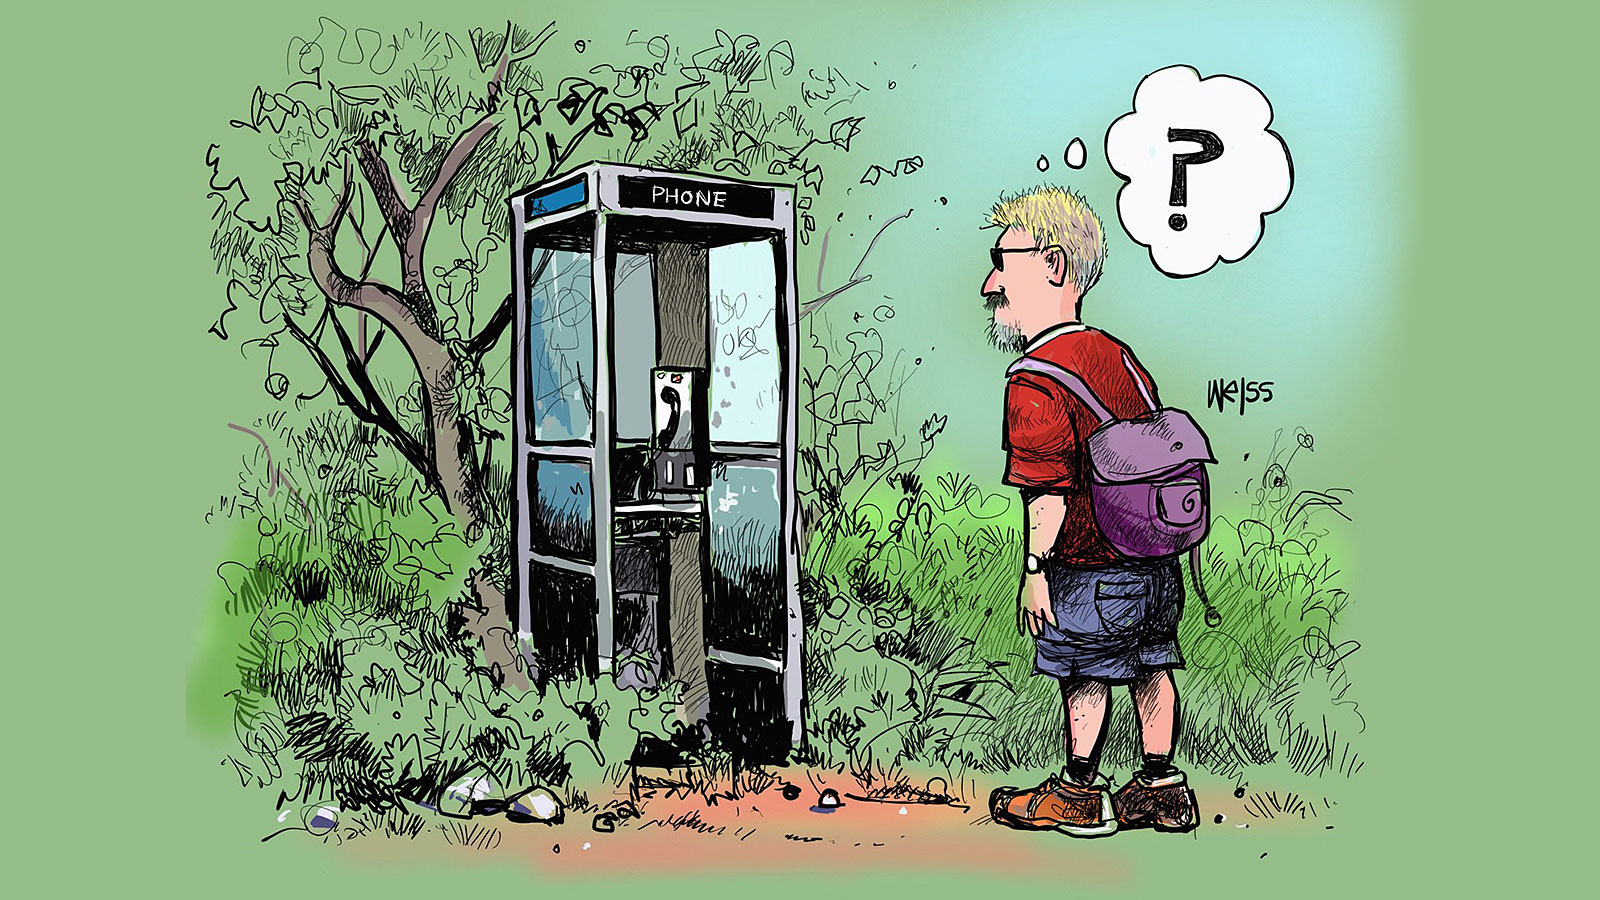 What if you found a magic phone booth in the woods?